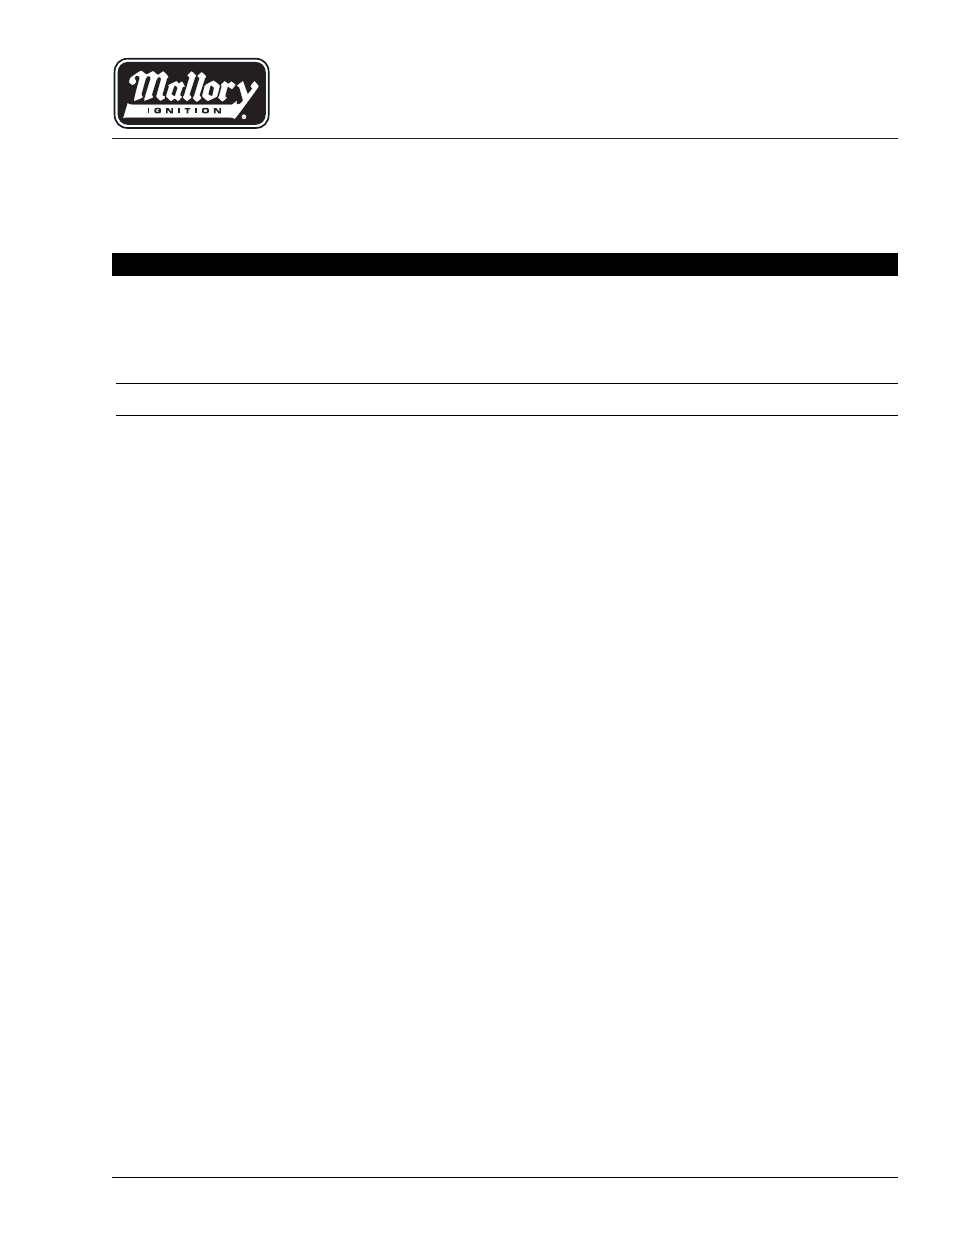 mallory ignition mallory unilite distributor page1 mallory ignition mallory unilite distributor user manual 13 mallory ignition wiring diagram at gsmx.co